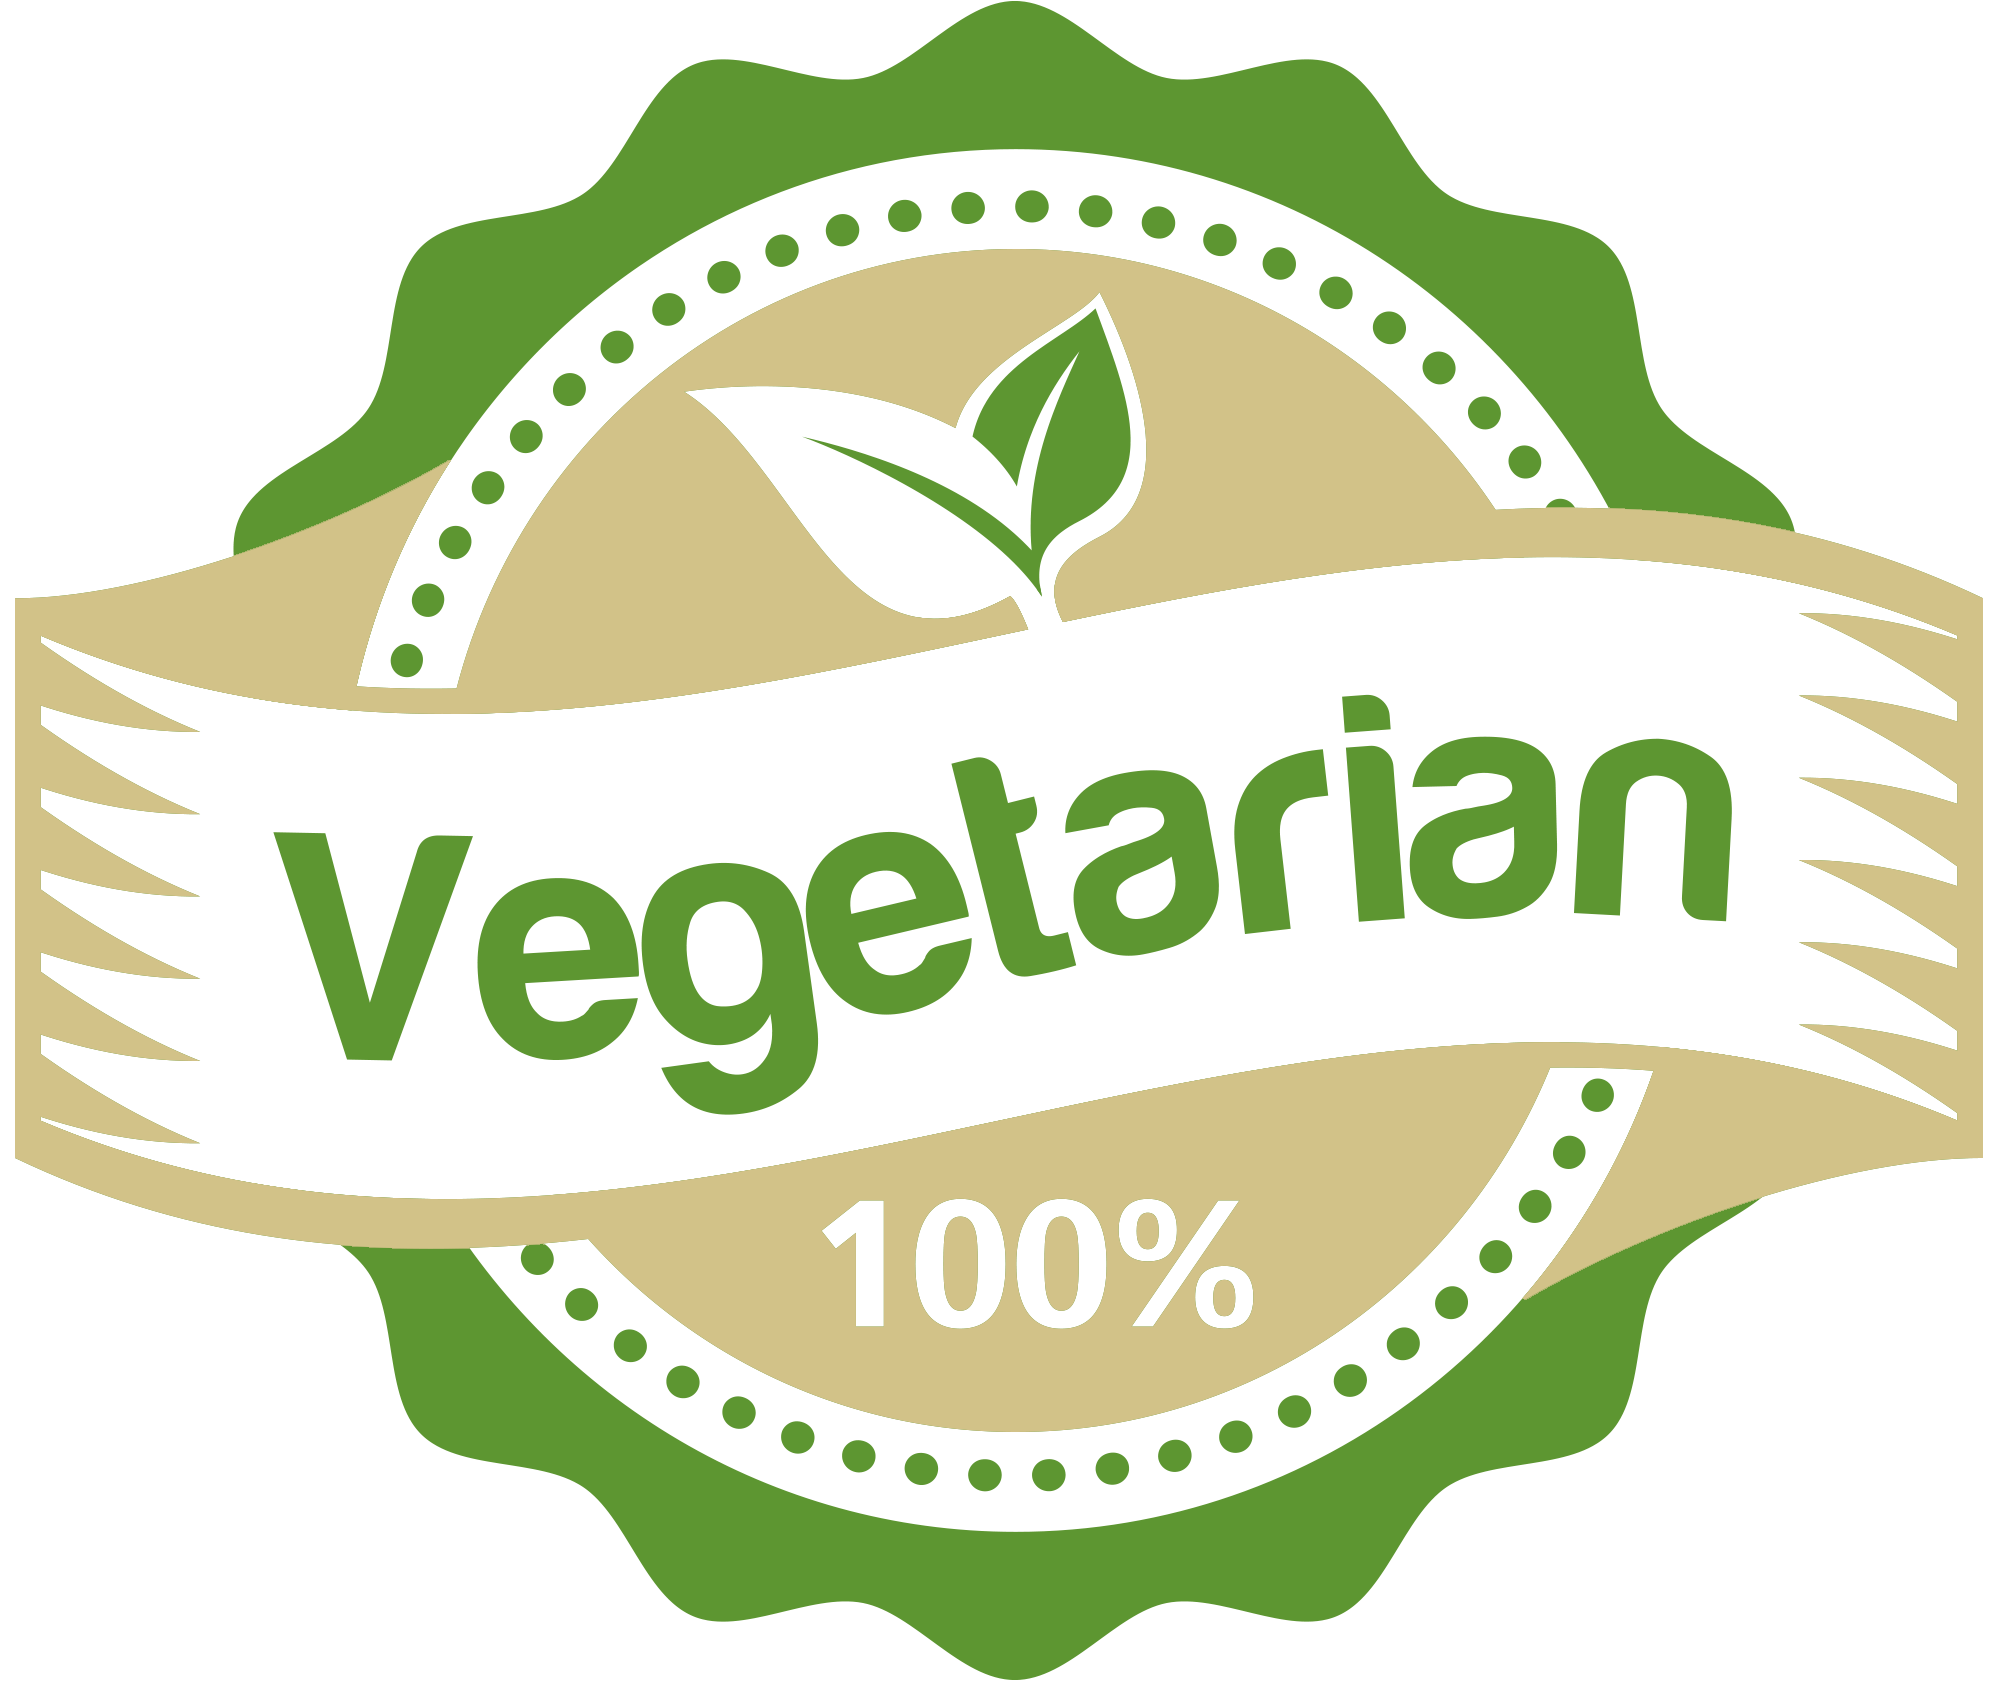 Vegetarian vs meat on emaze for What is a vegetarian that eats fish